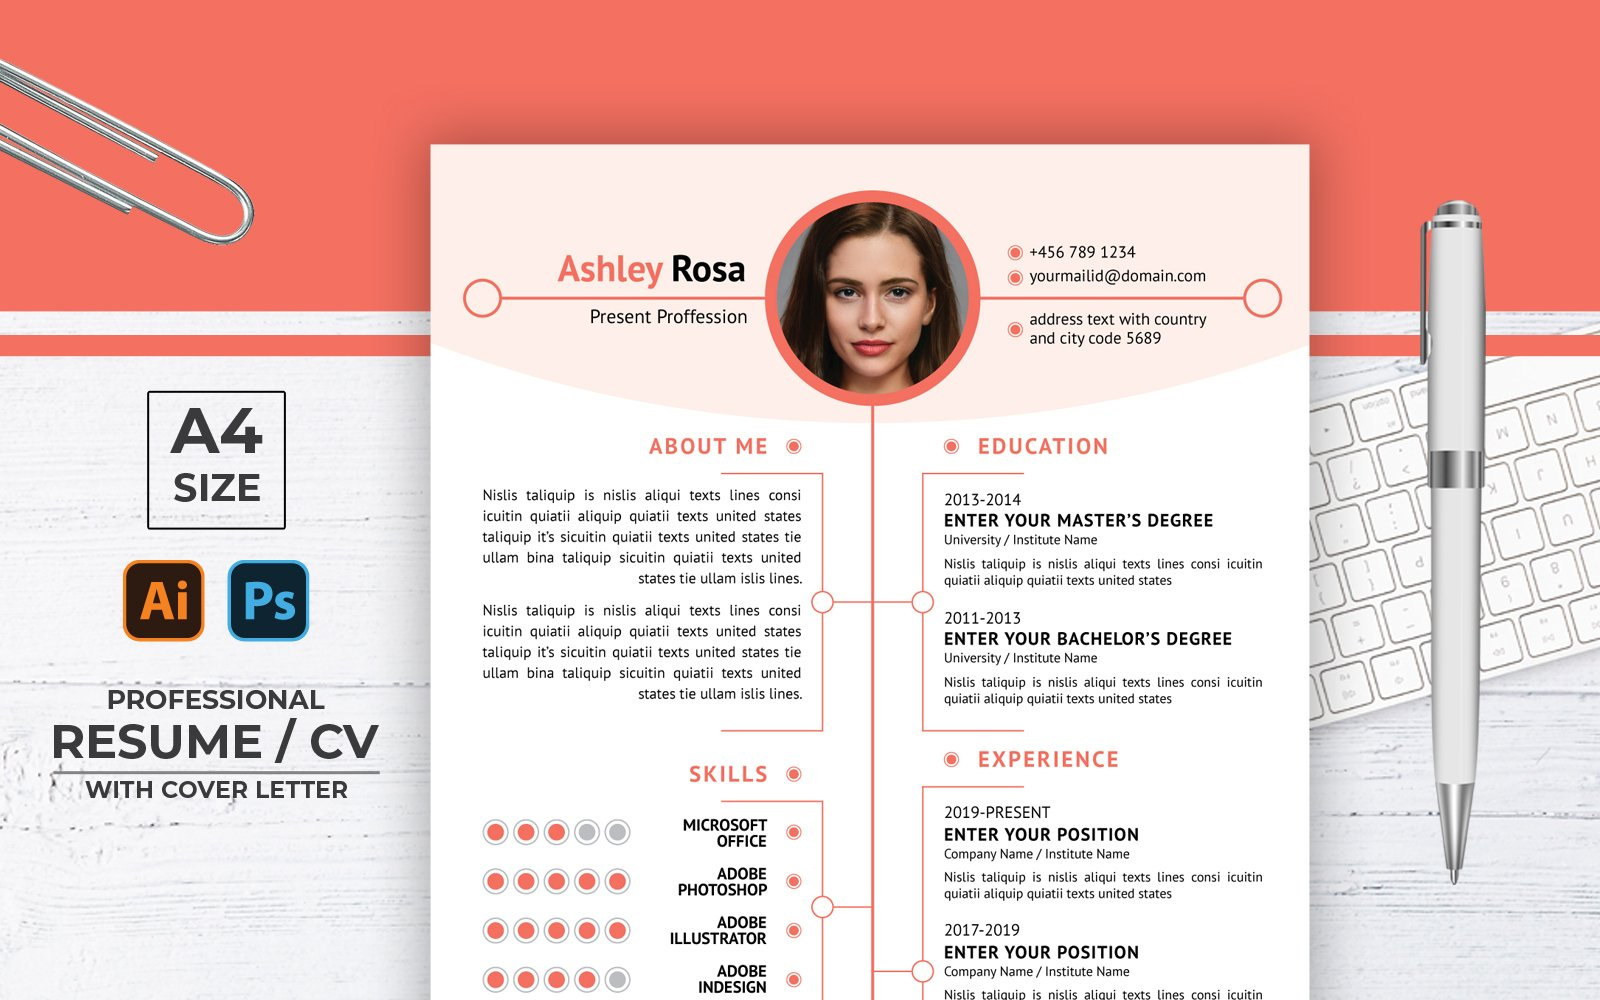 Ashley Rosa Creative CV Resume Template